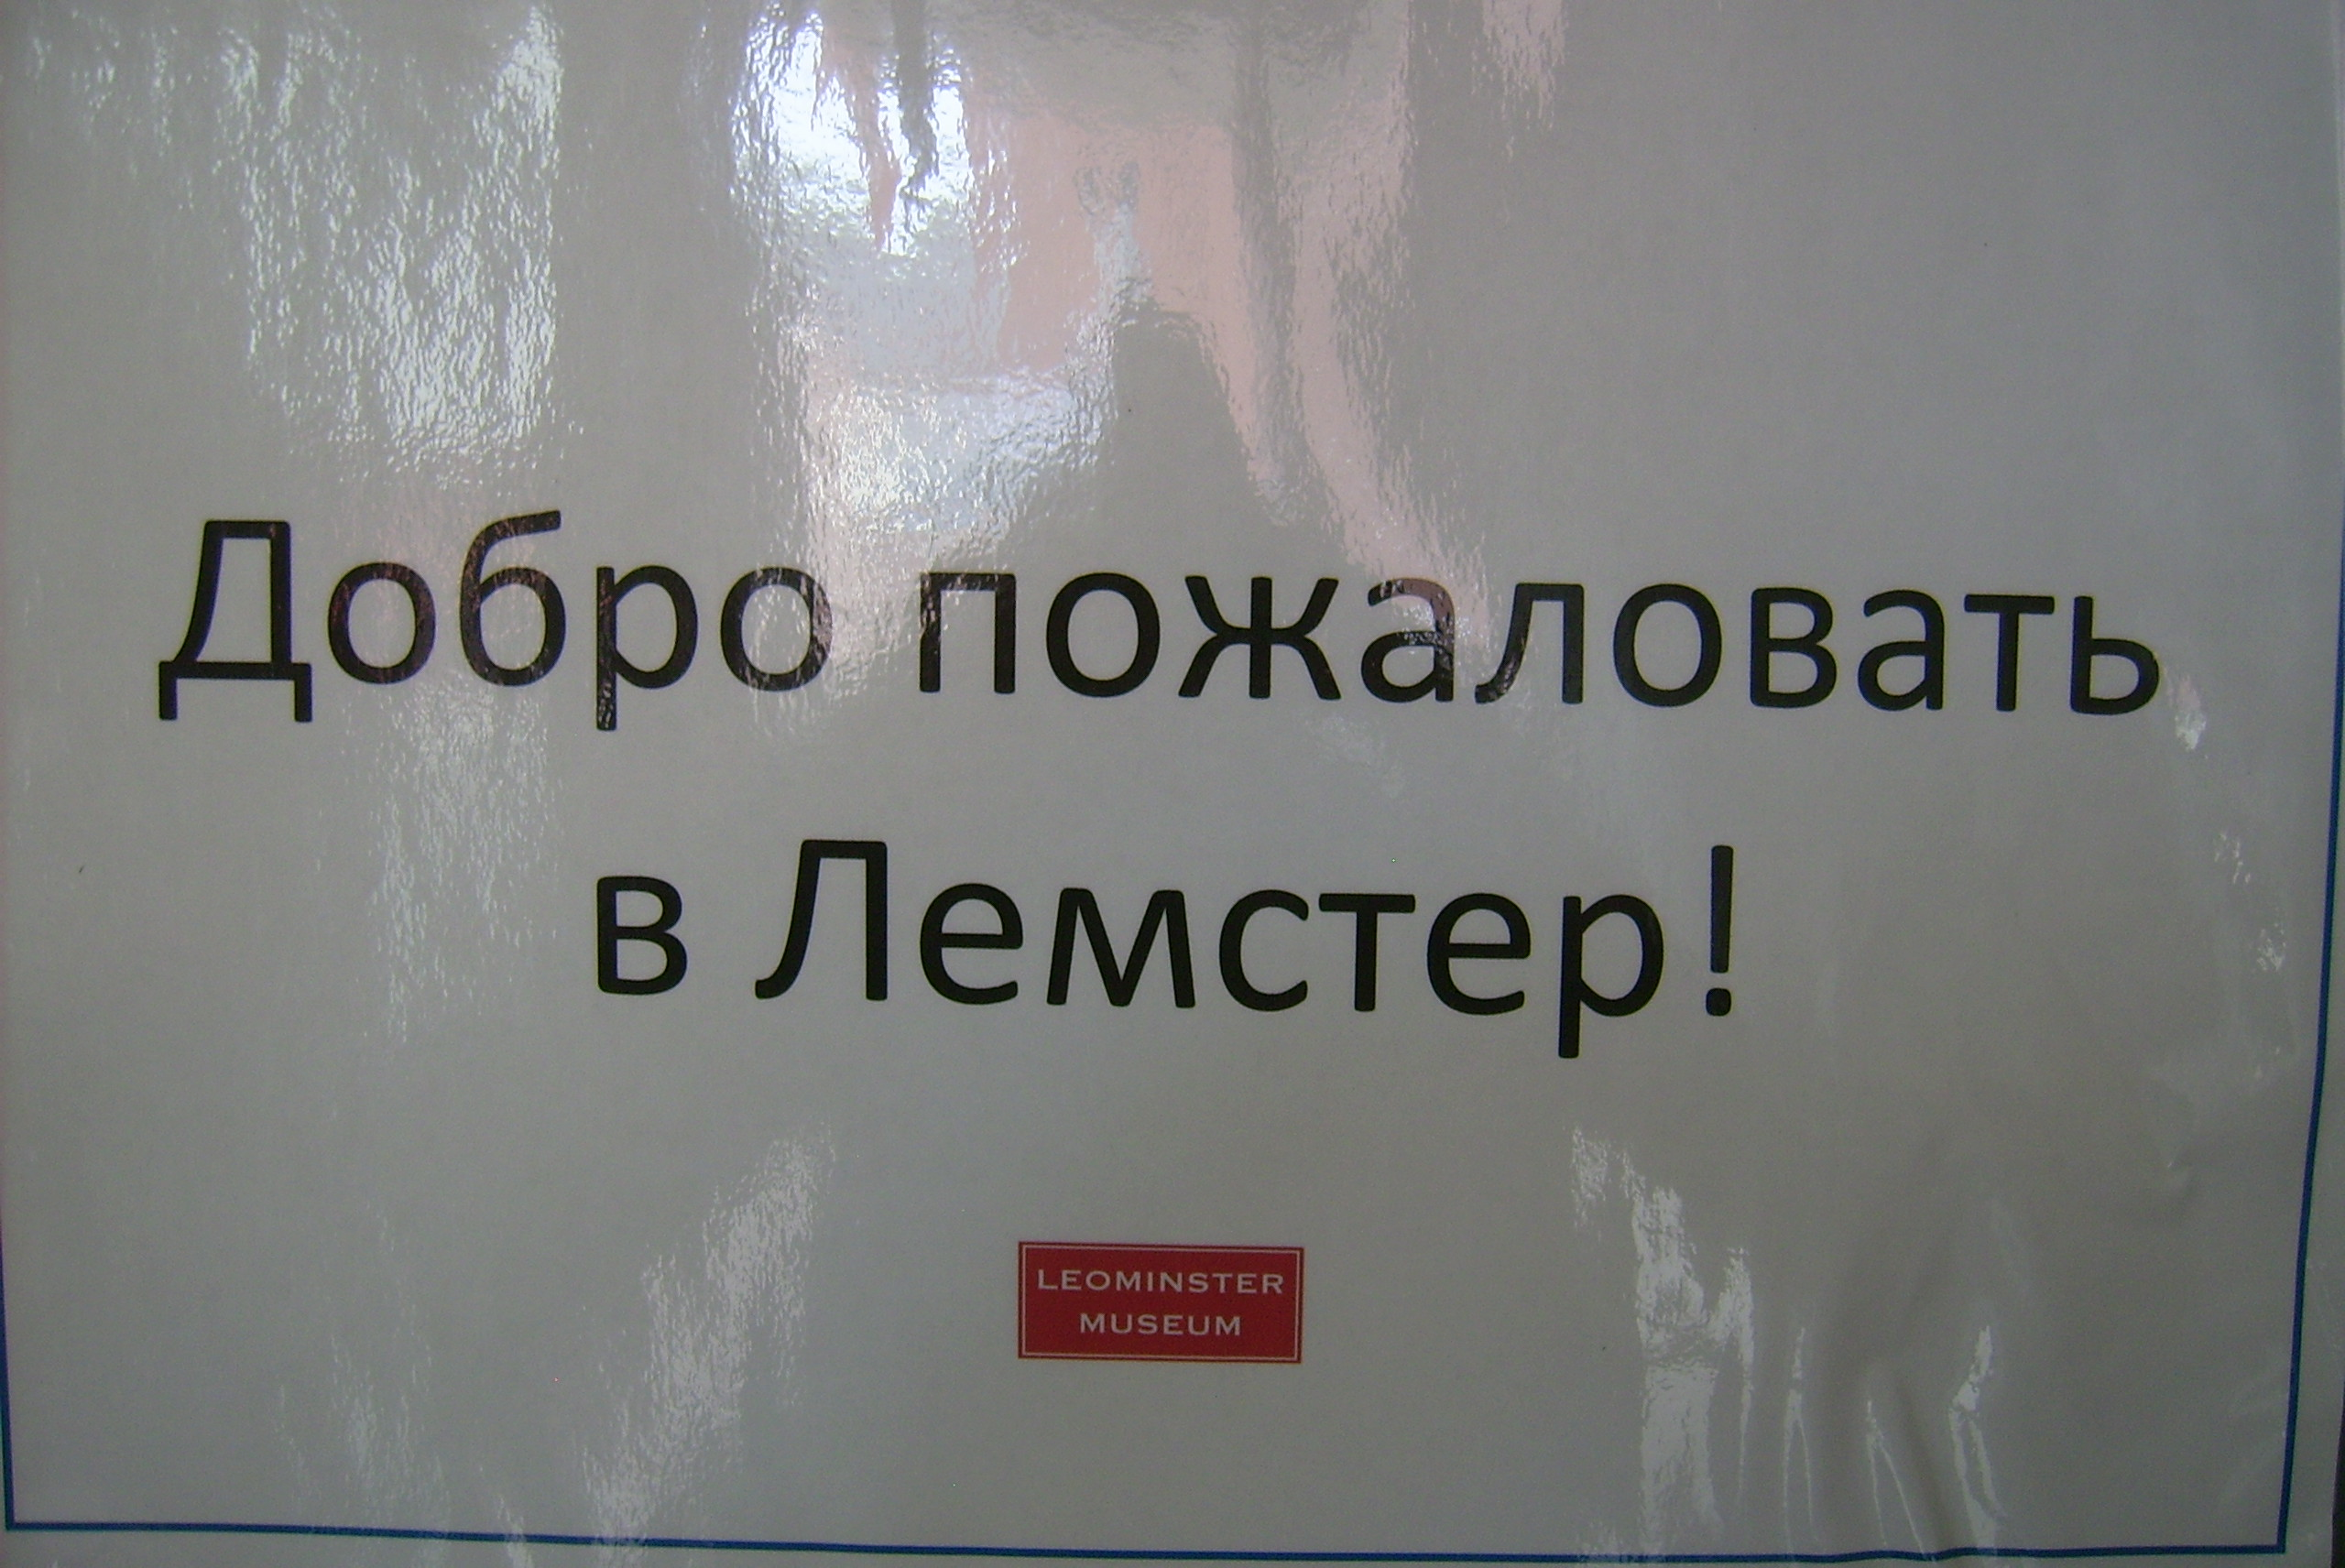 'Welcome to Leominster' in Russian